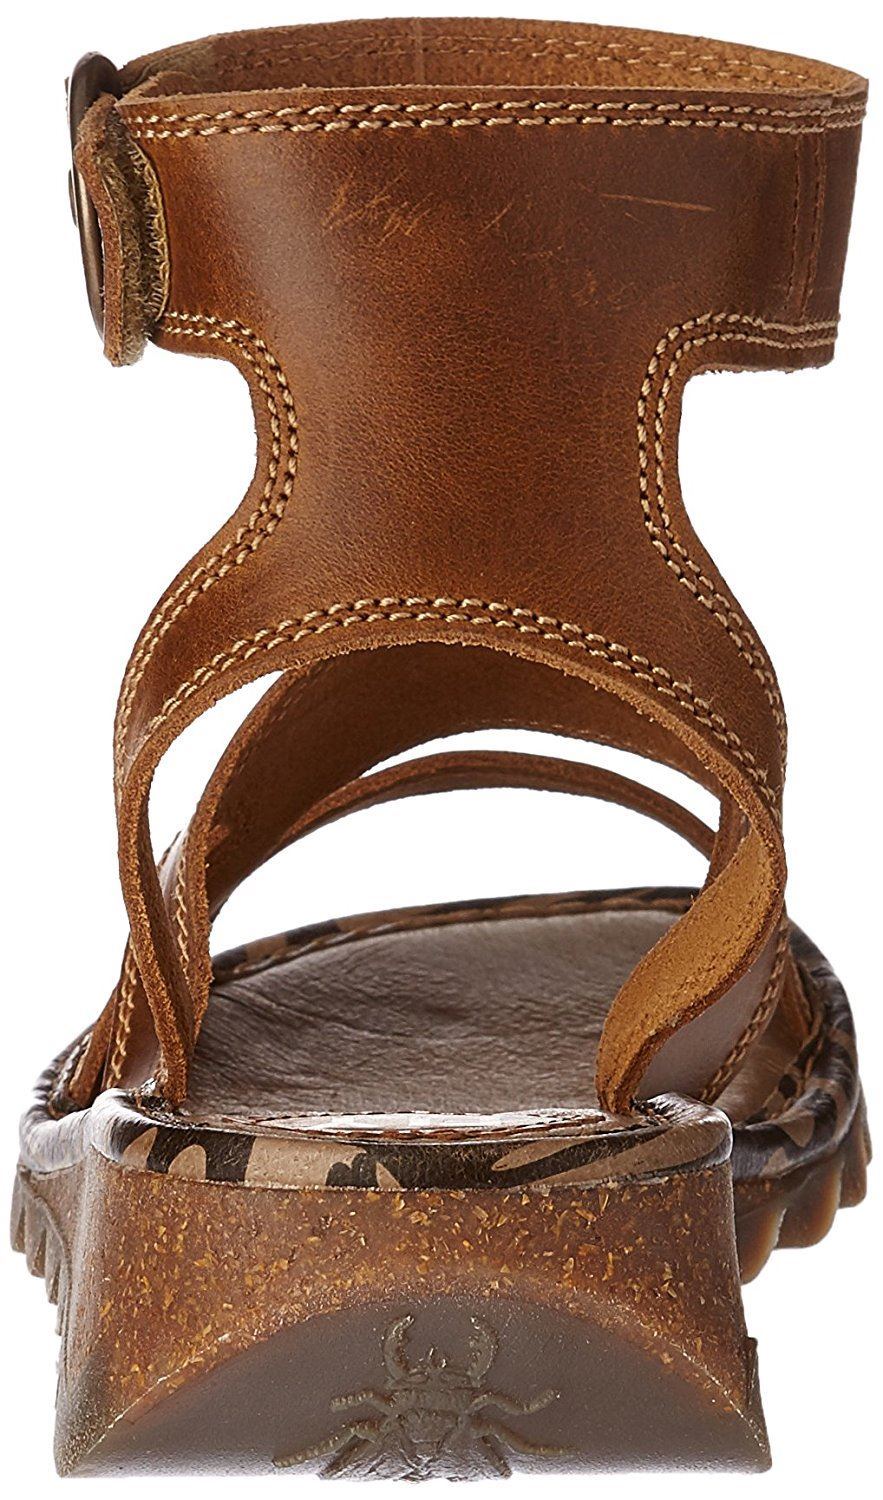 Fly-London-TILY722FLY-Ladies-Strappy-Gladiator-Style-Leather-Wedge-Sandals thumbnail 13